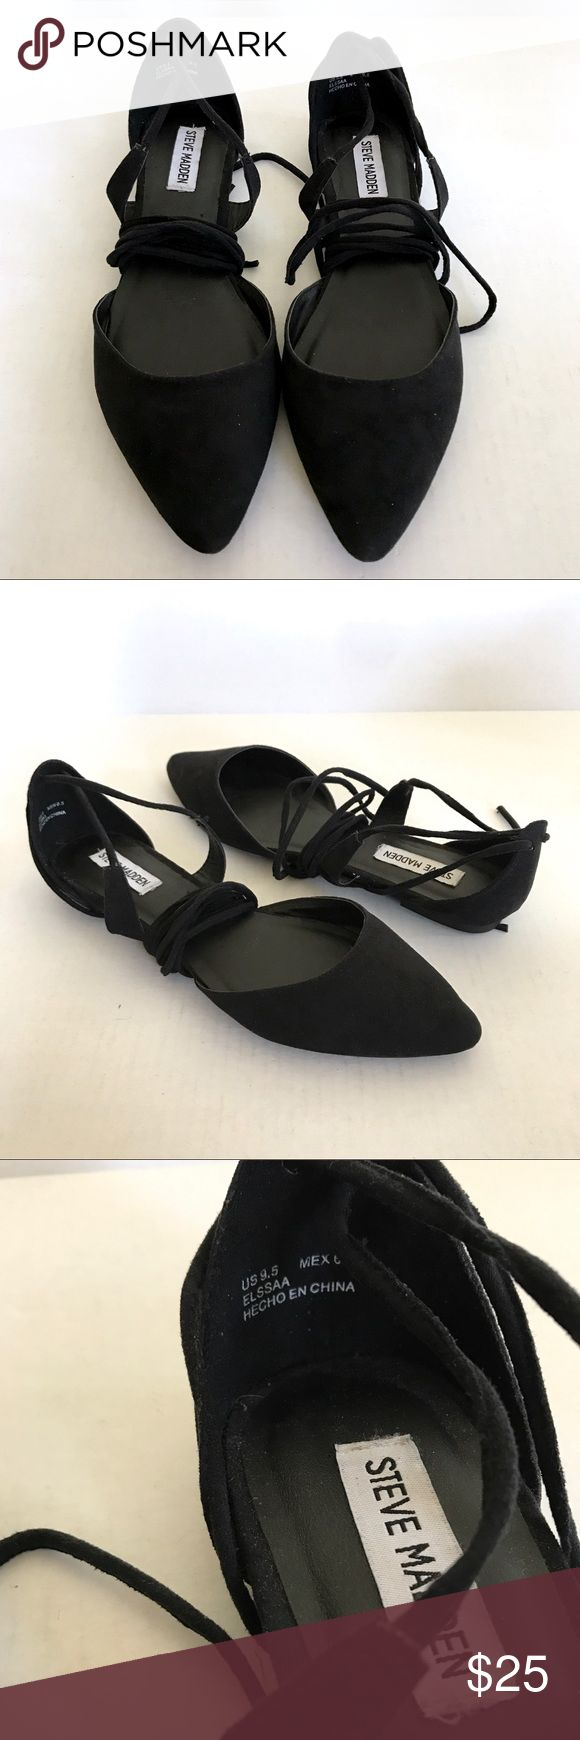 Steve Madden Lace Up Pointy Toe Black Flats NWOB New without box  Steve Madden Elssaa Lace Up / Wrap / Ankle Tie Pointy Toe Black Flats Size 9.5 Steve Madden Shoes Flats & Loafers